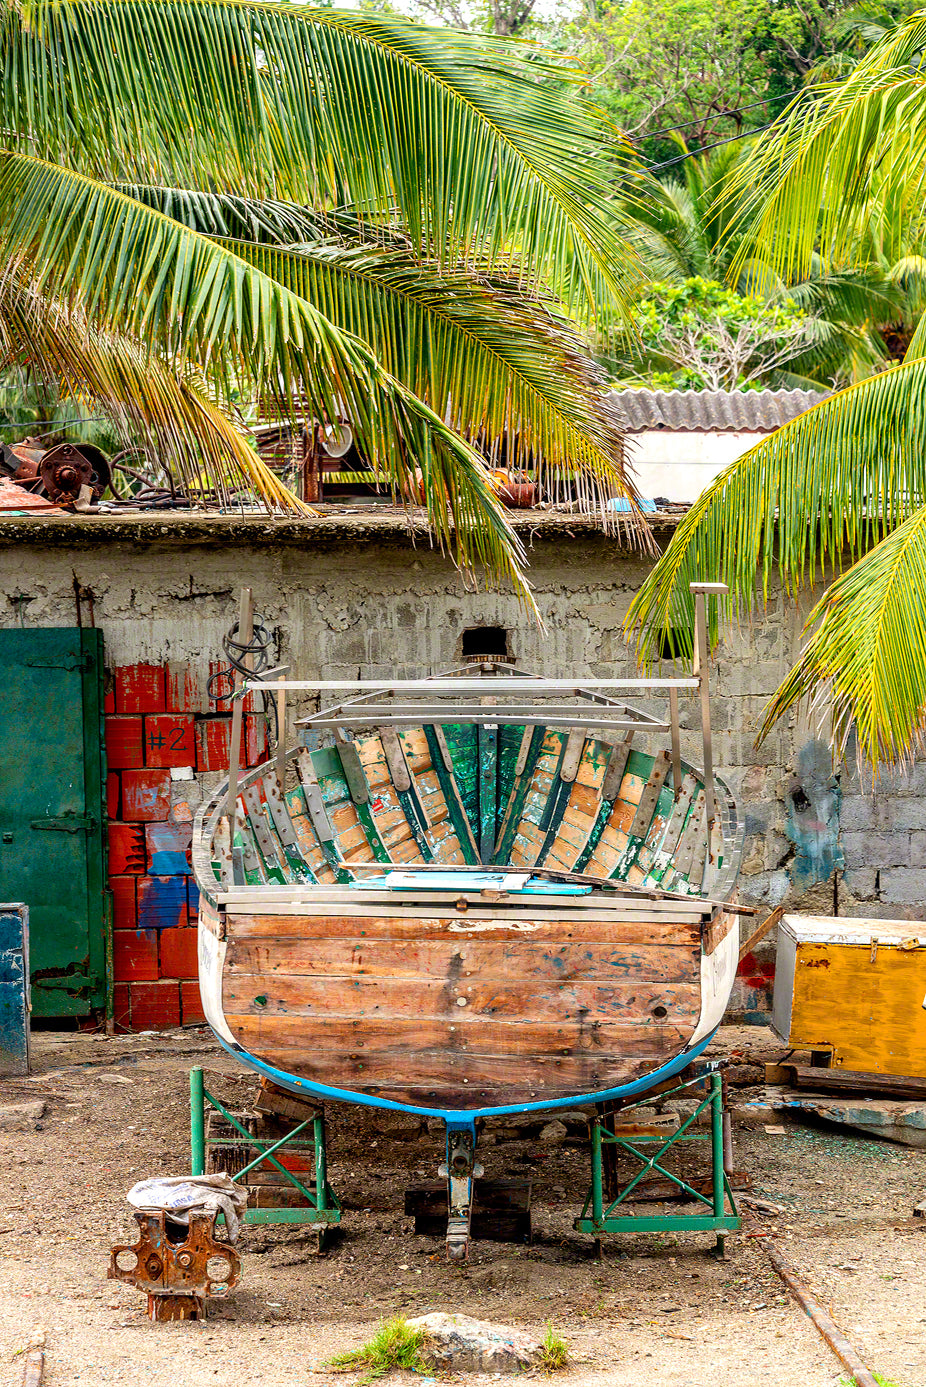 A photo of a rustic boat in a boat yard in Cojimar, Cuba